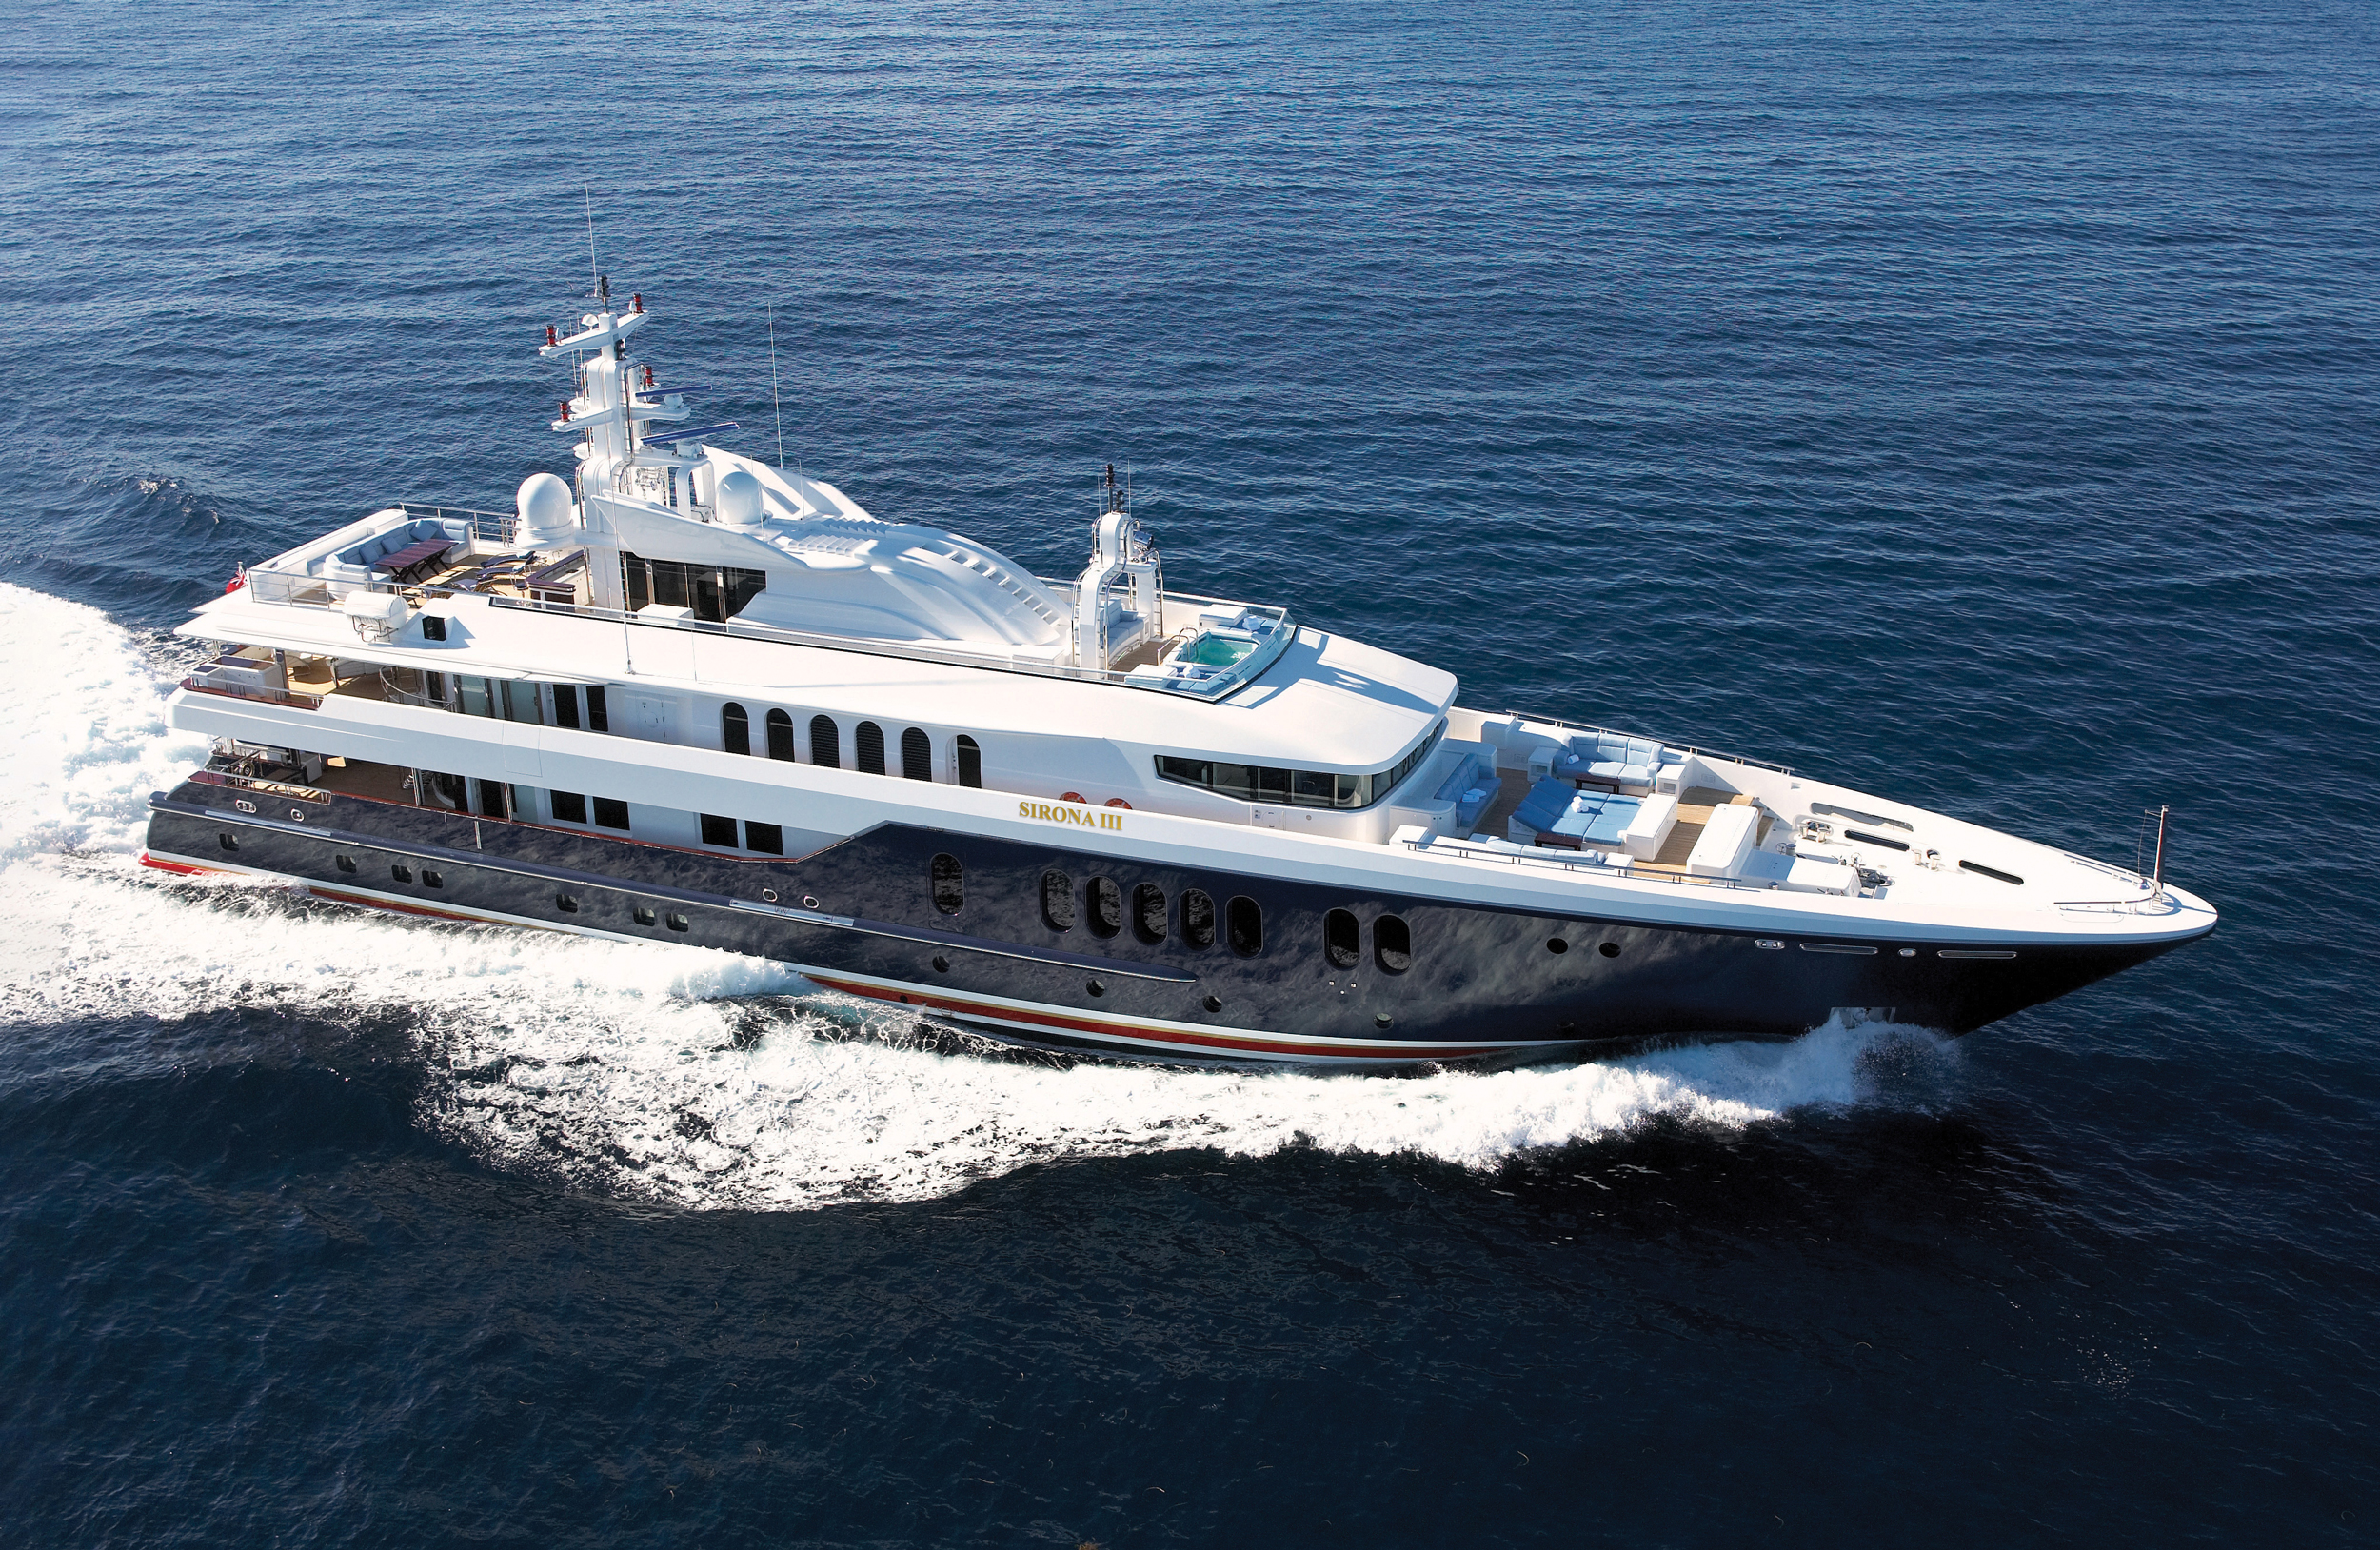 SIRONA III charter specs and number of guests